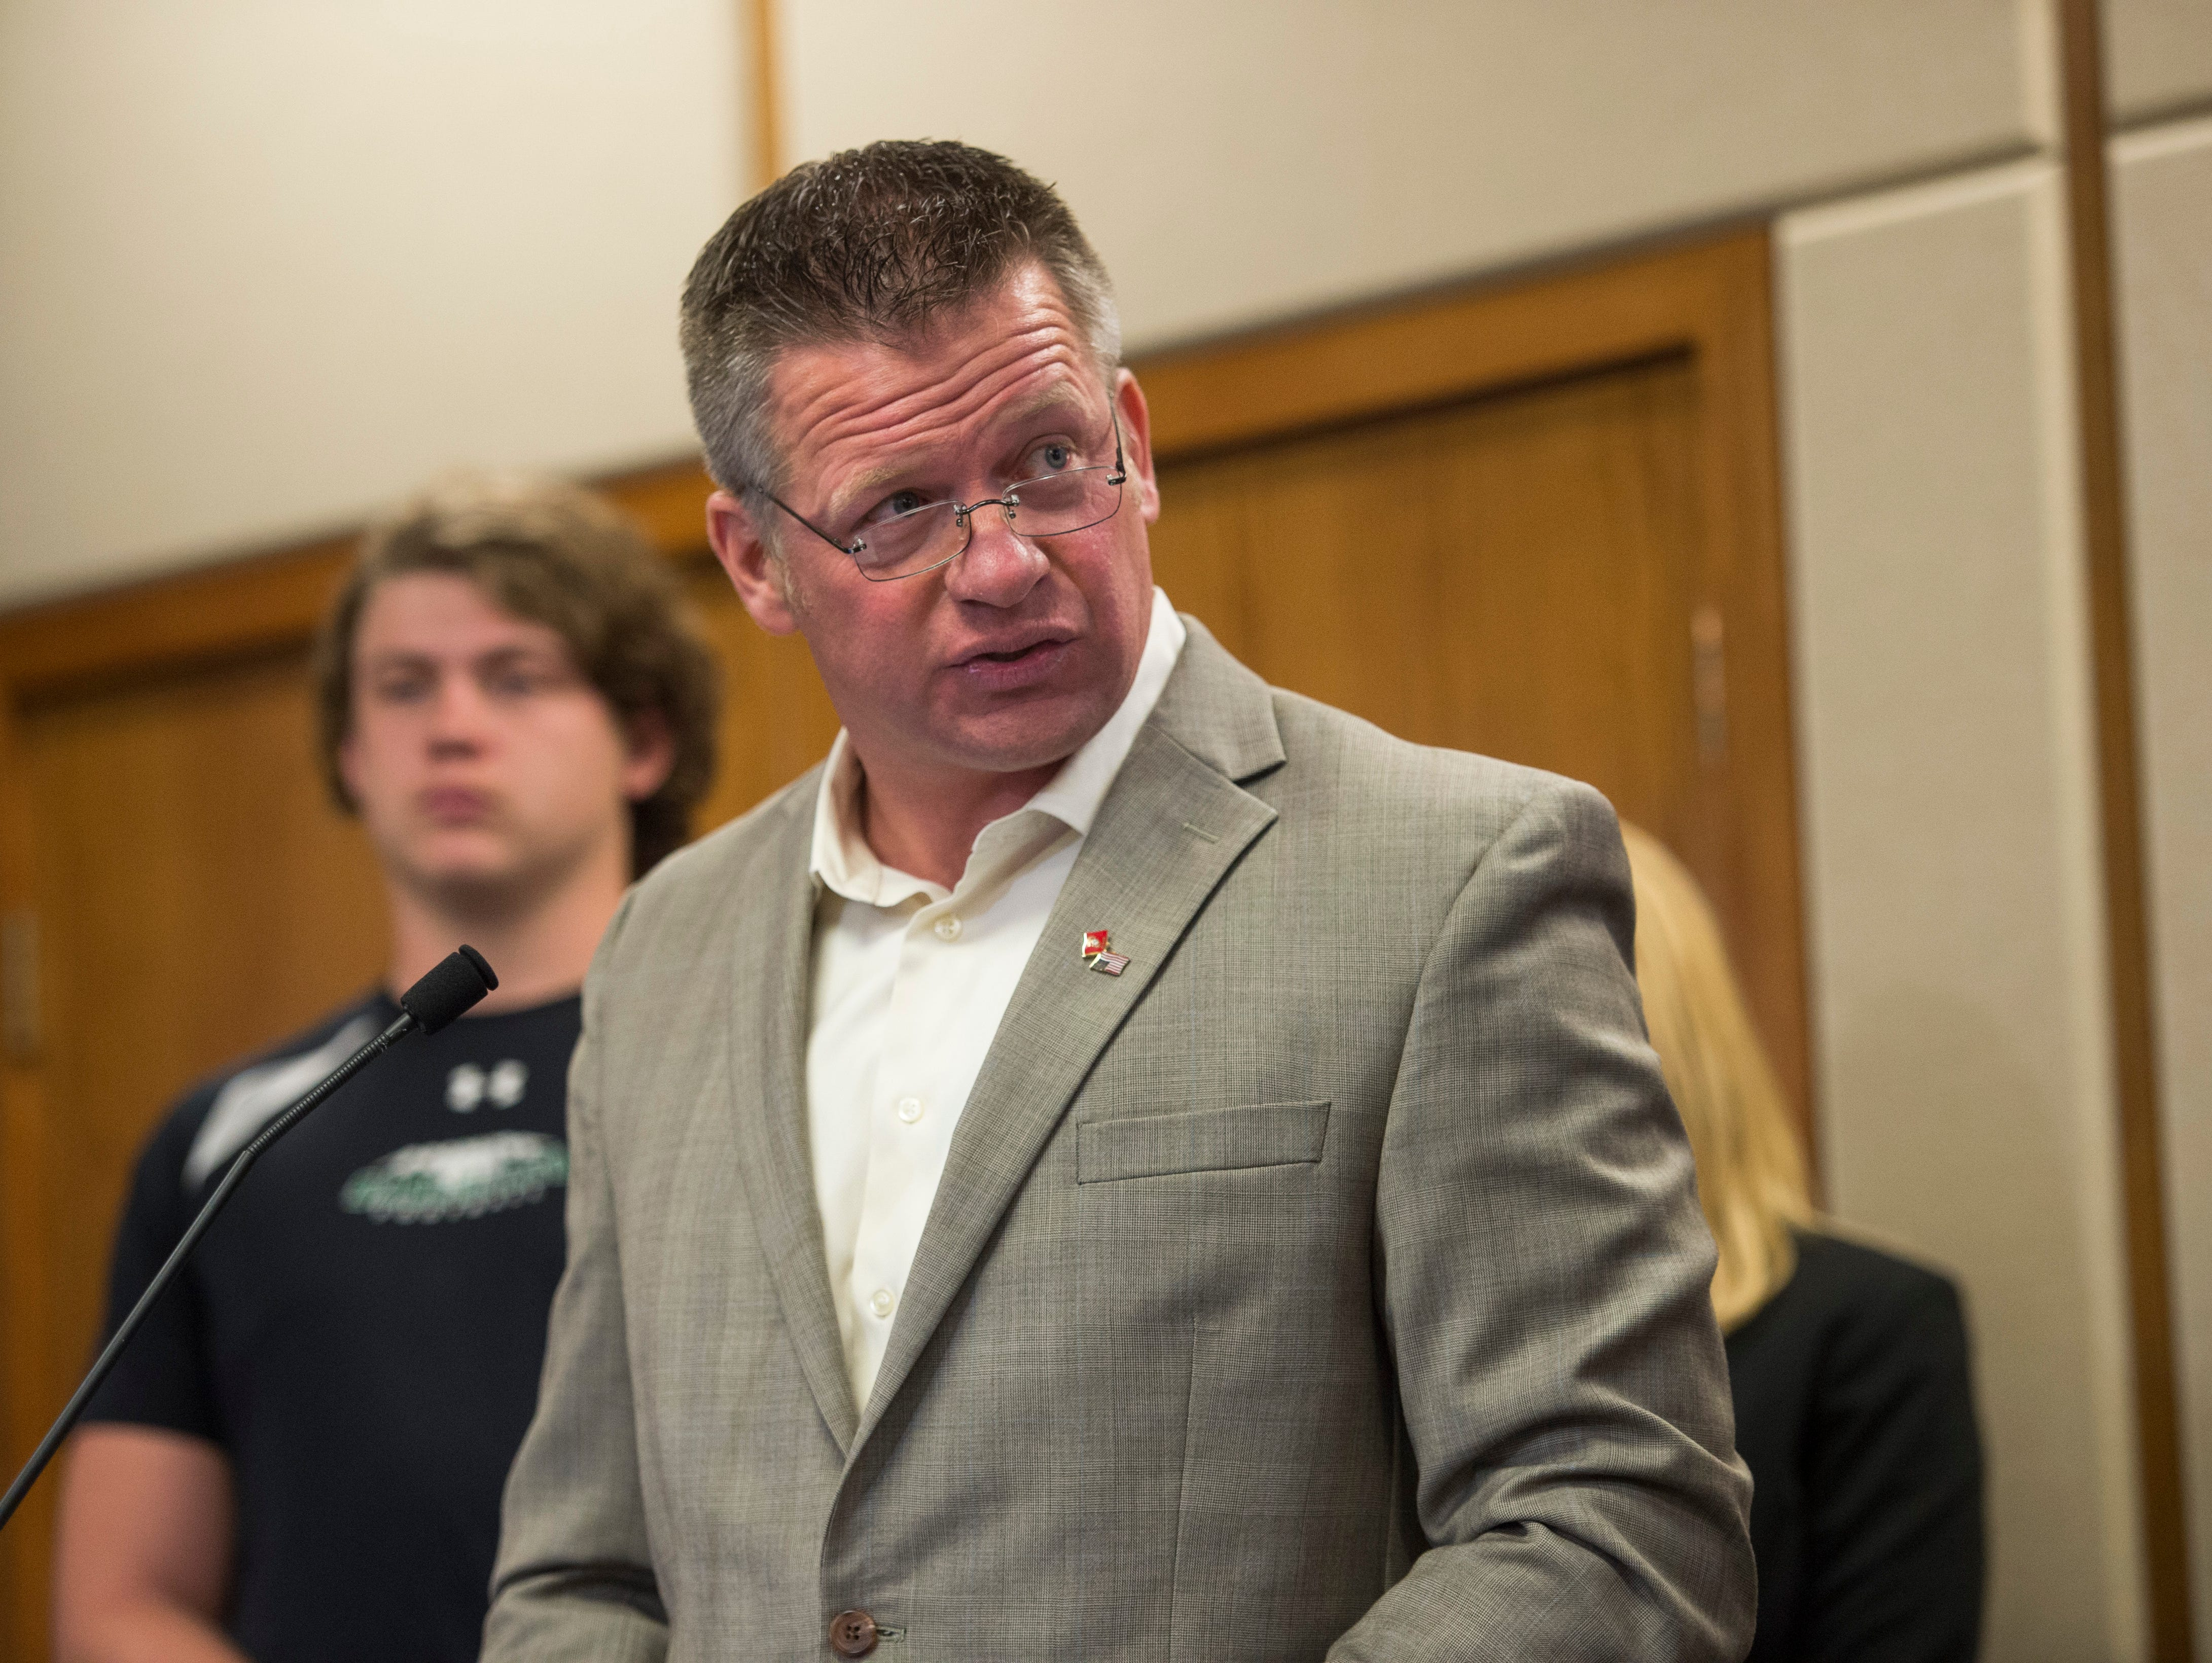 Fossil Ridge High School booster and supporter of former coach Brian Tinker, Randy Russell, speaks before the PSD Board of Education during a meeting Tuesday, April 12, 2016. The coach was fired last month.